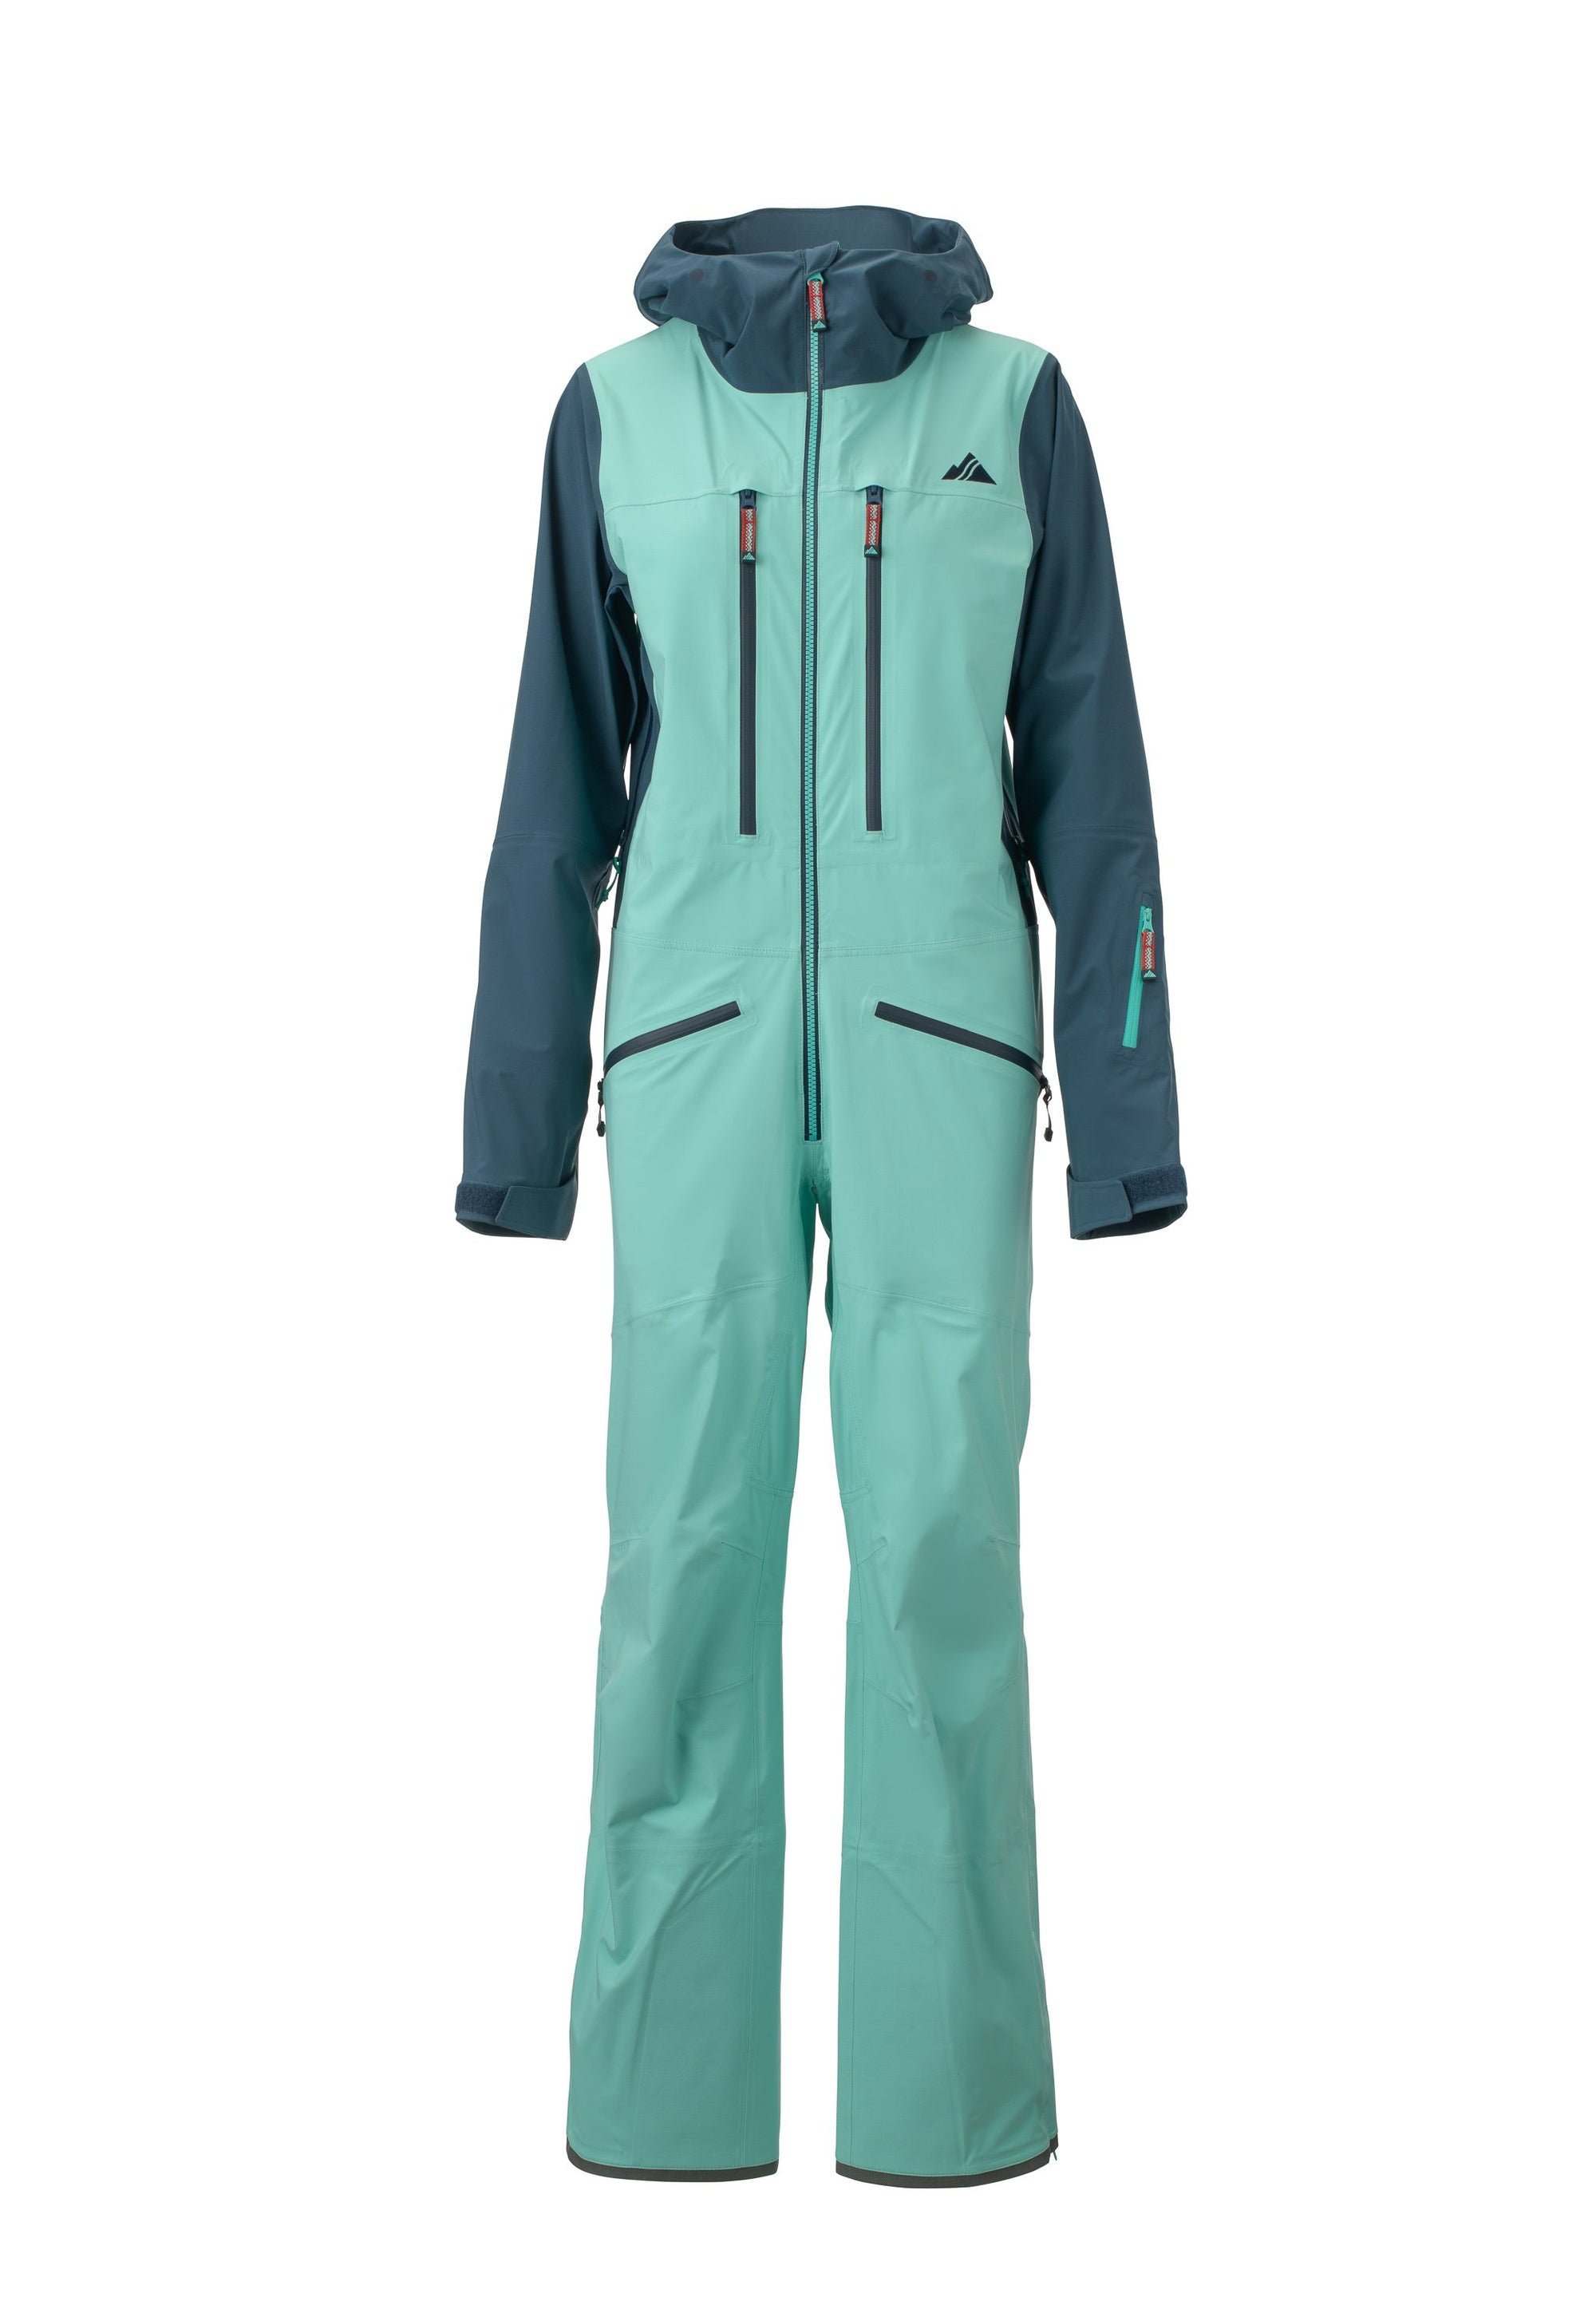 tropicana 2019 women's sickbird event shell skiing and snowboarding one-piece suit from strafe outerwear